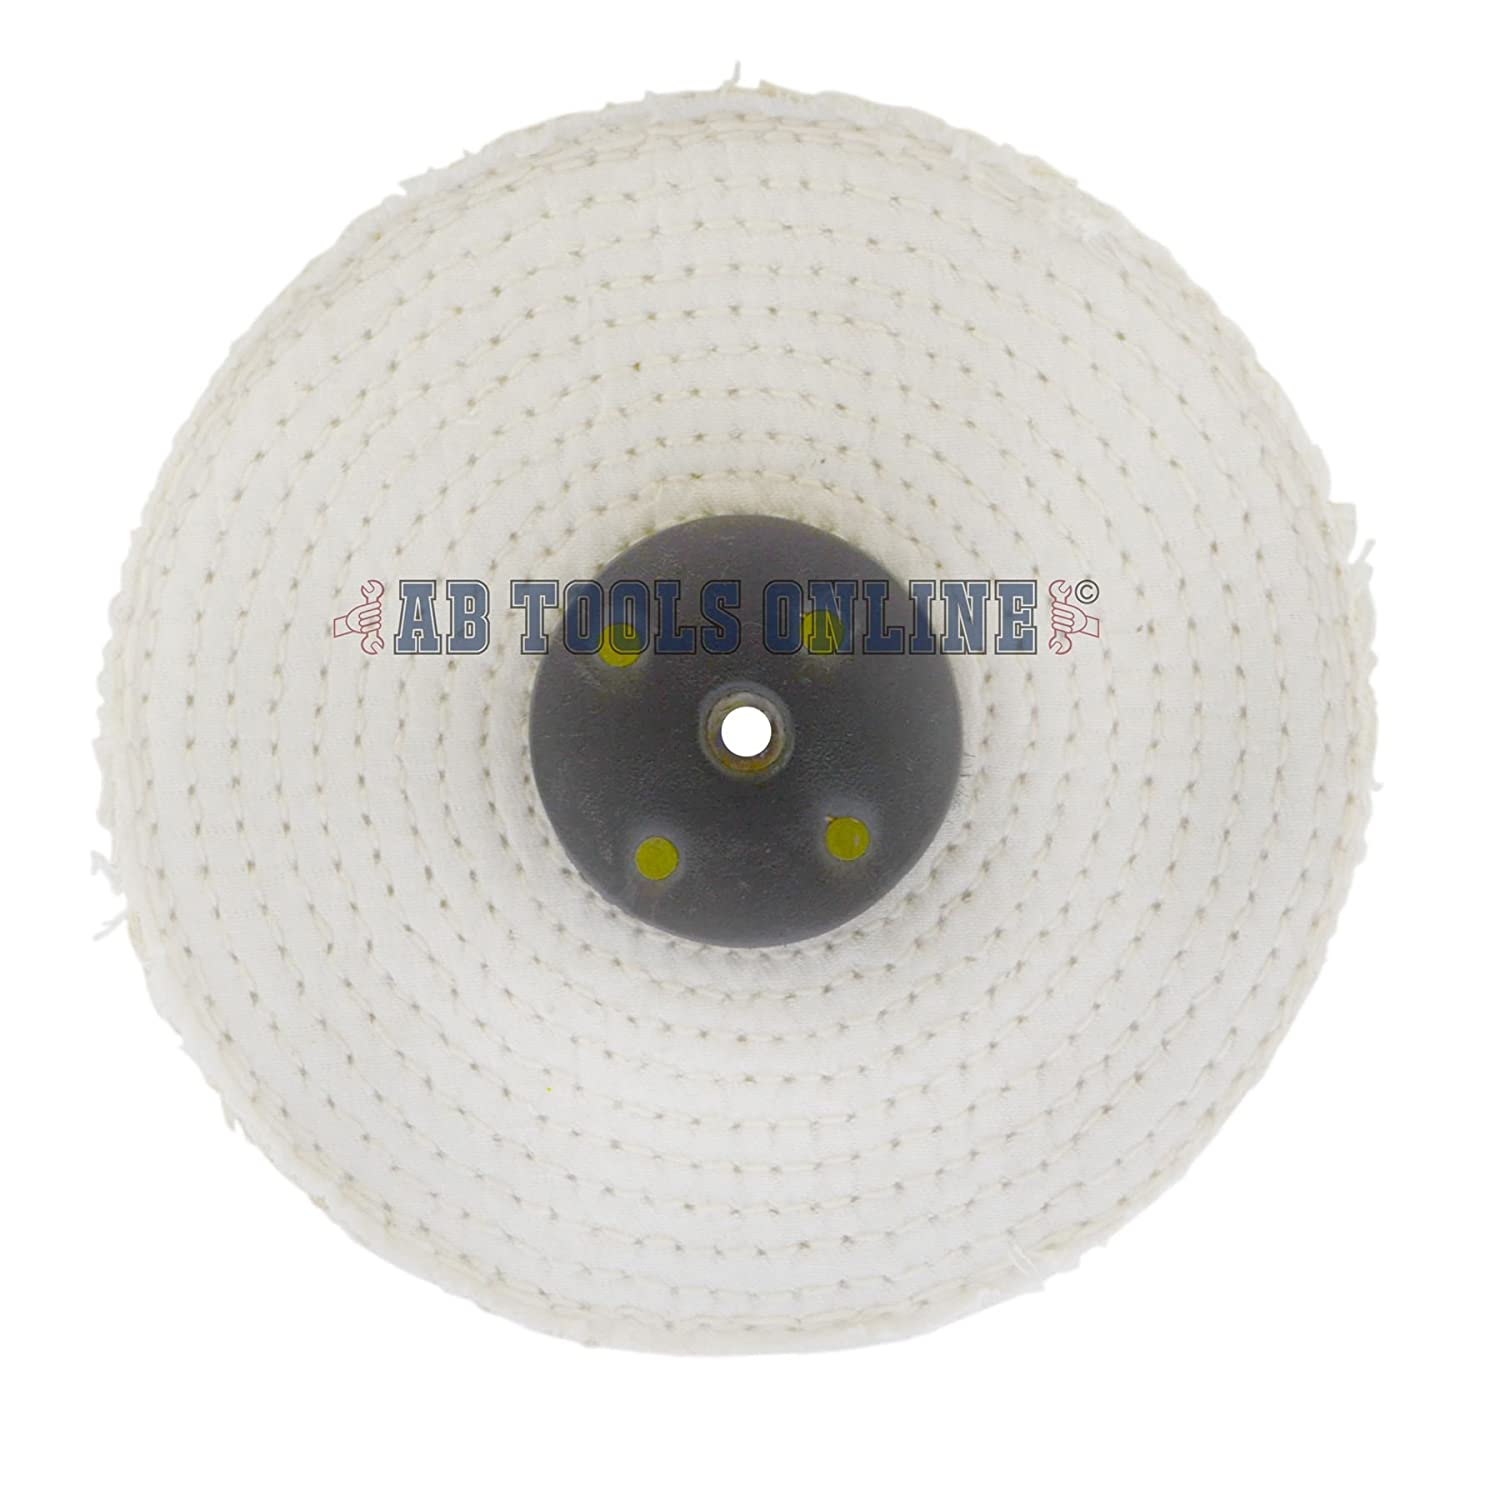 Coupe rapide Sisal grossier Polissage Polissage RDP 6' x 0.5' 1 L'article 1er niveau Metal AB Tools